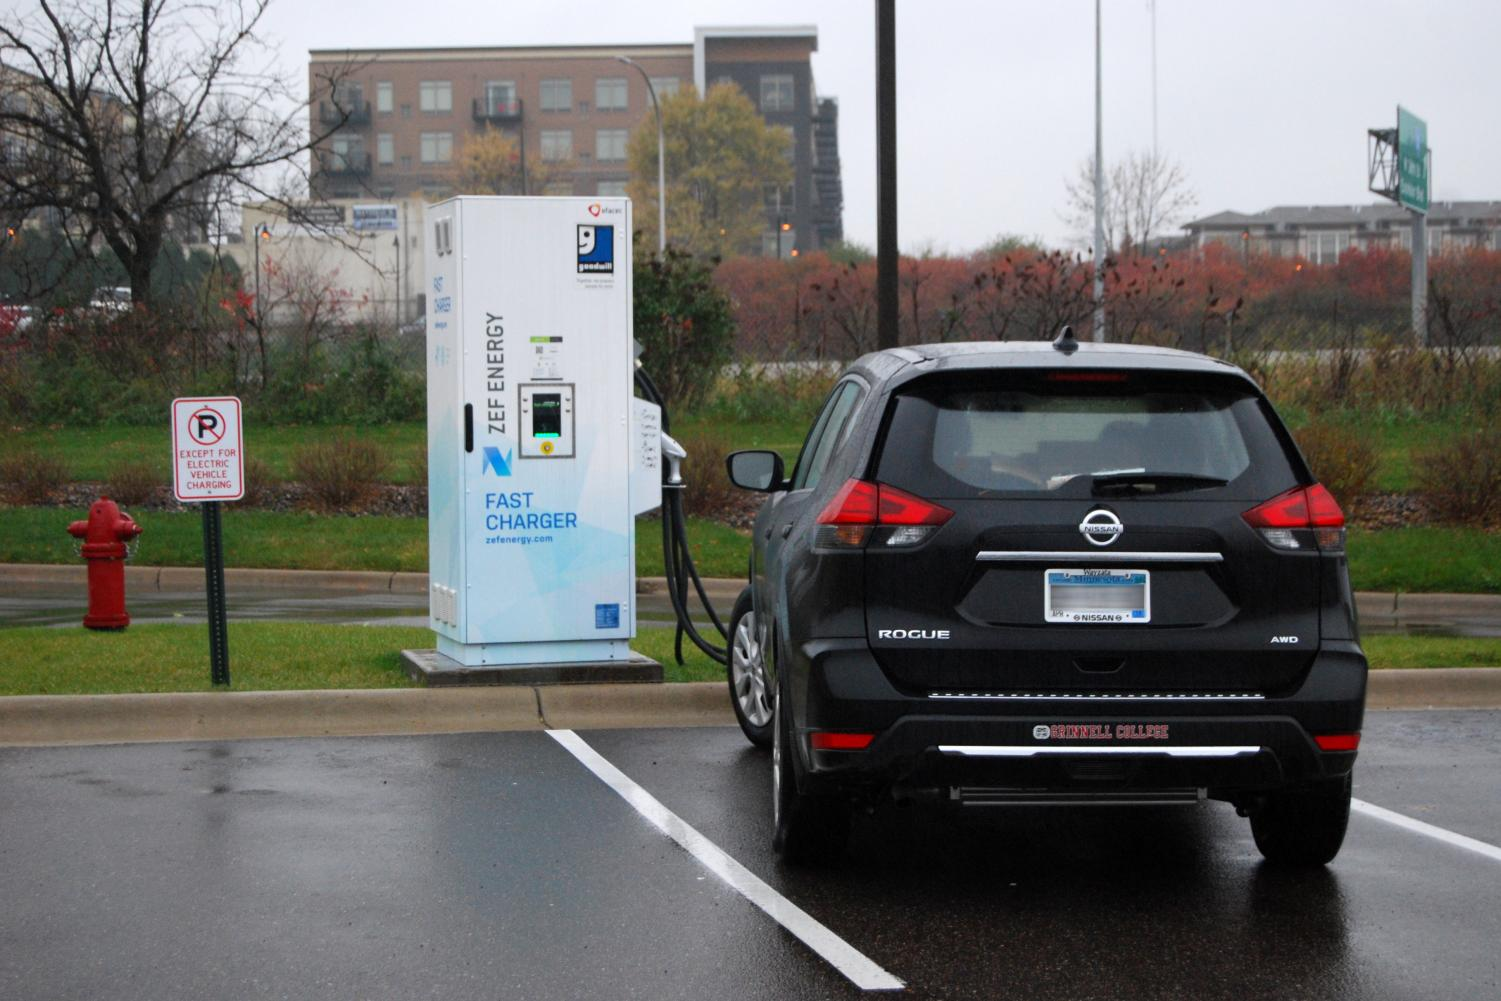 A car parks near the electric car charger at the Goodwill on Hwy 100. The City of Minneapolis is considering changing their official vehicles from gas to electricity powered.